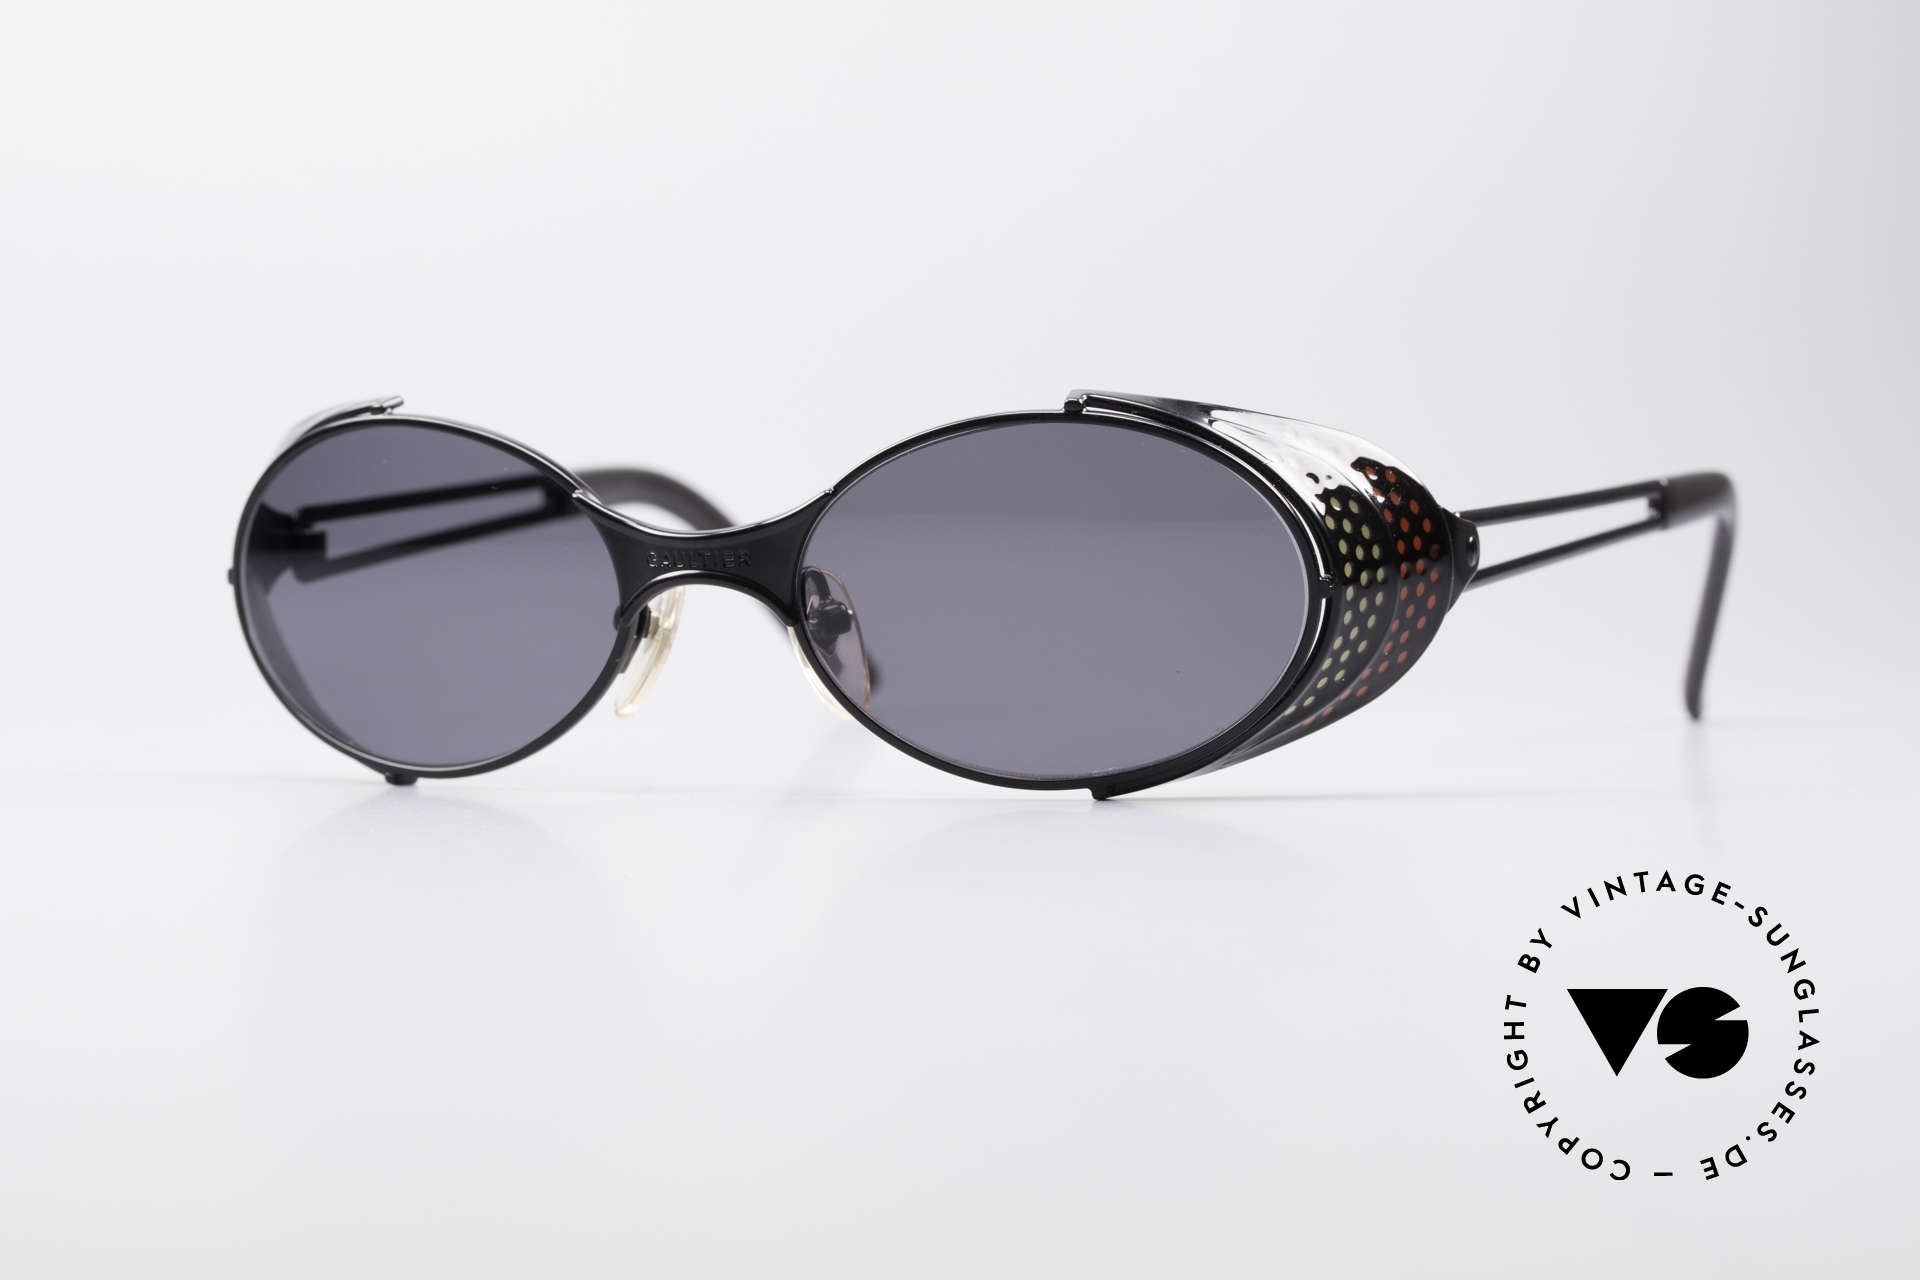 Jean Paul Gaultier 56-7109 JPG Steampunk Sunglasses, vintage Gaultier designer sunglasses from the mid 90's, Made for Men and Women